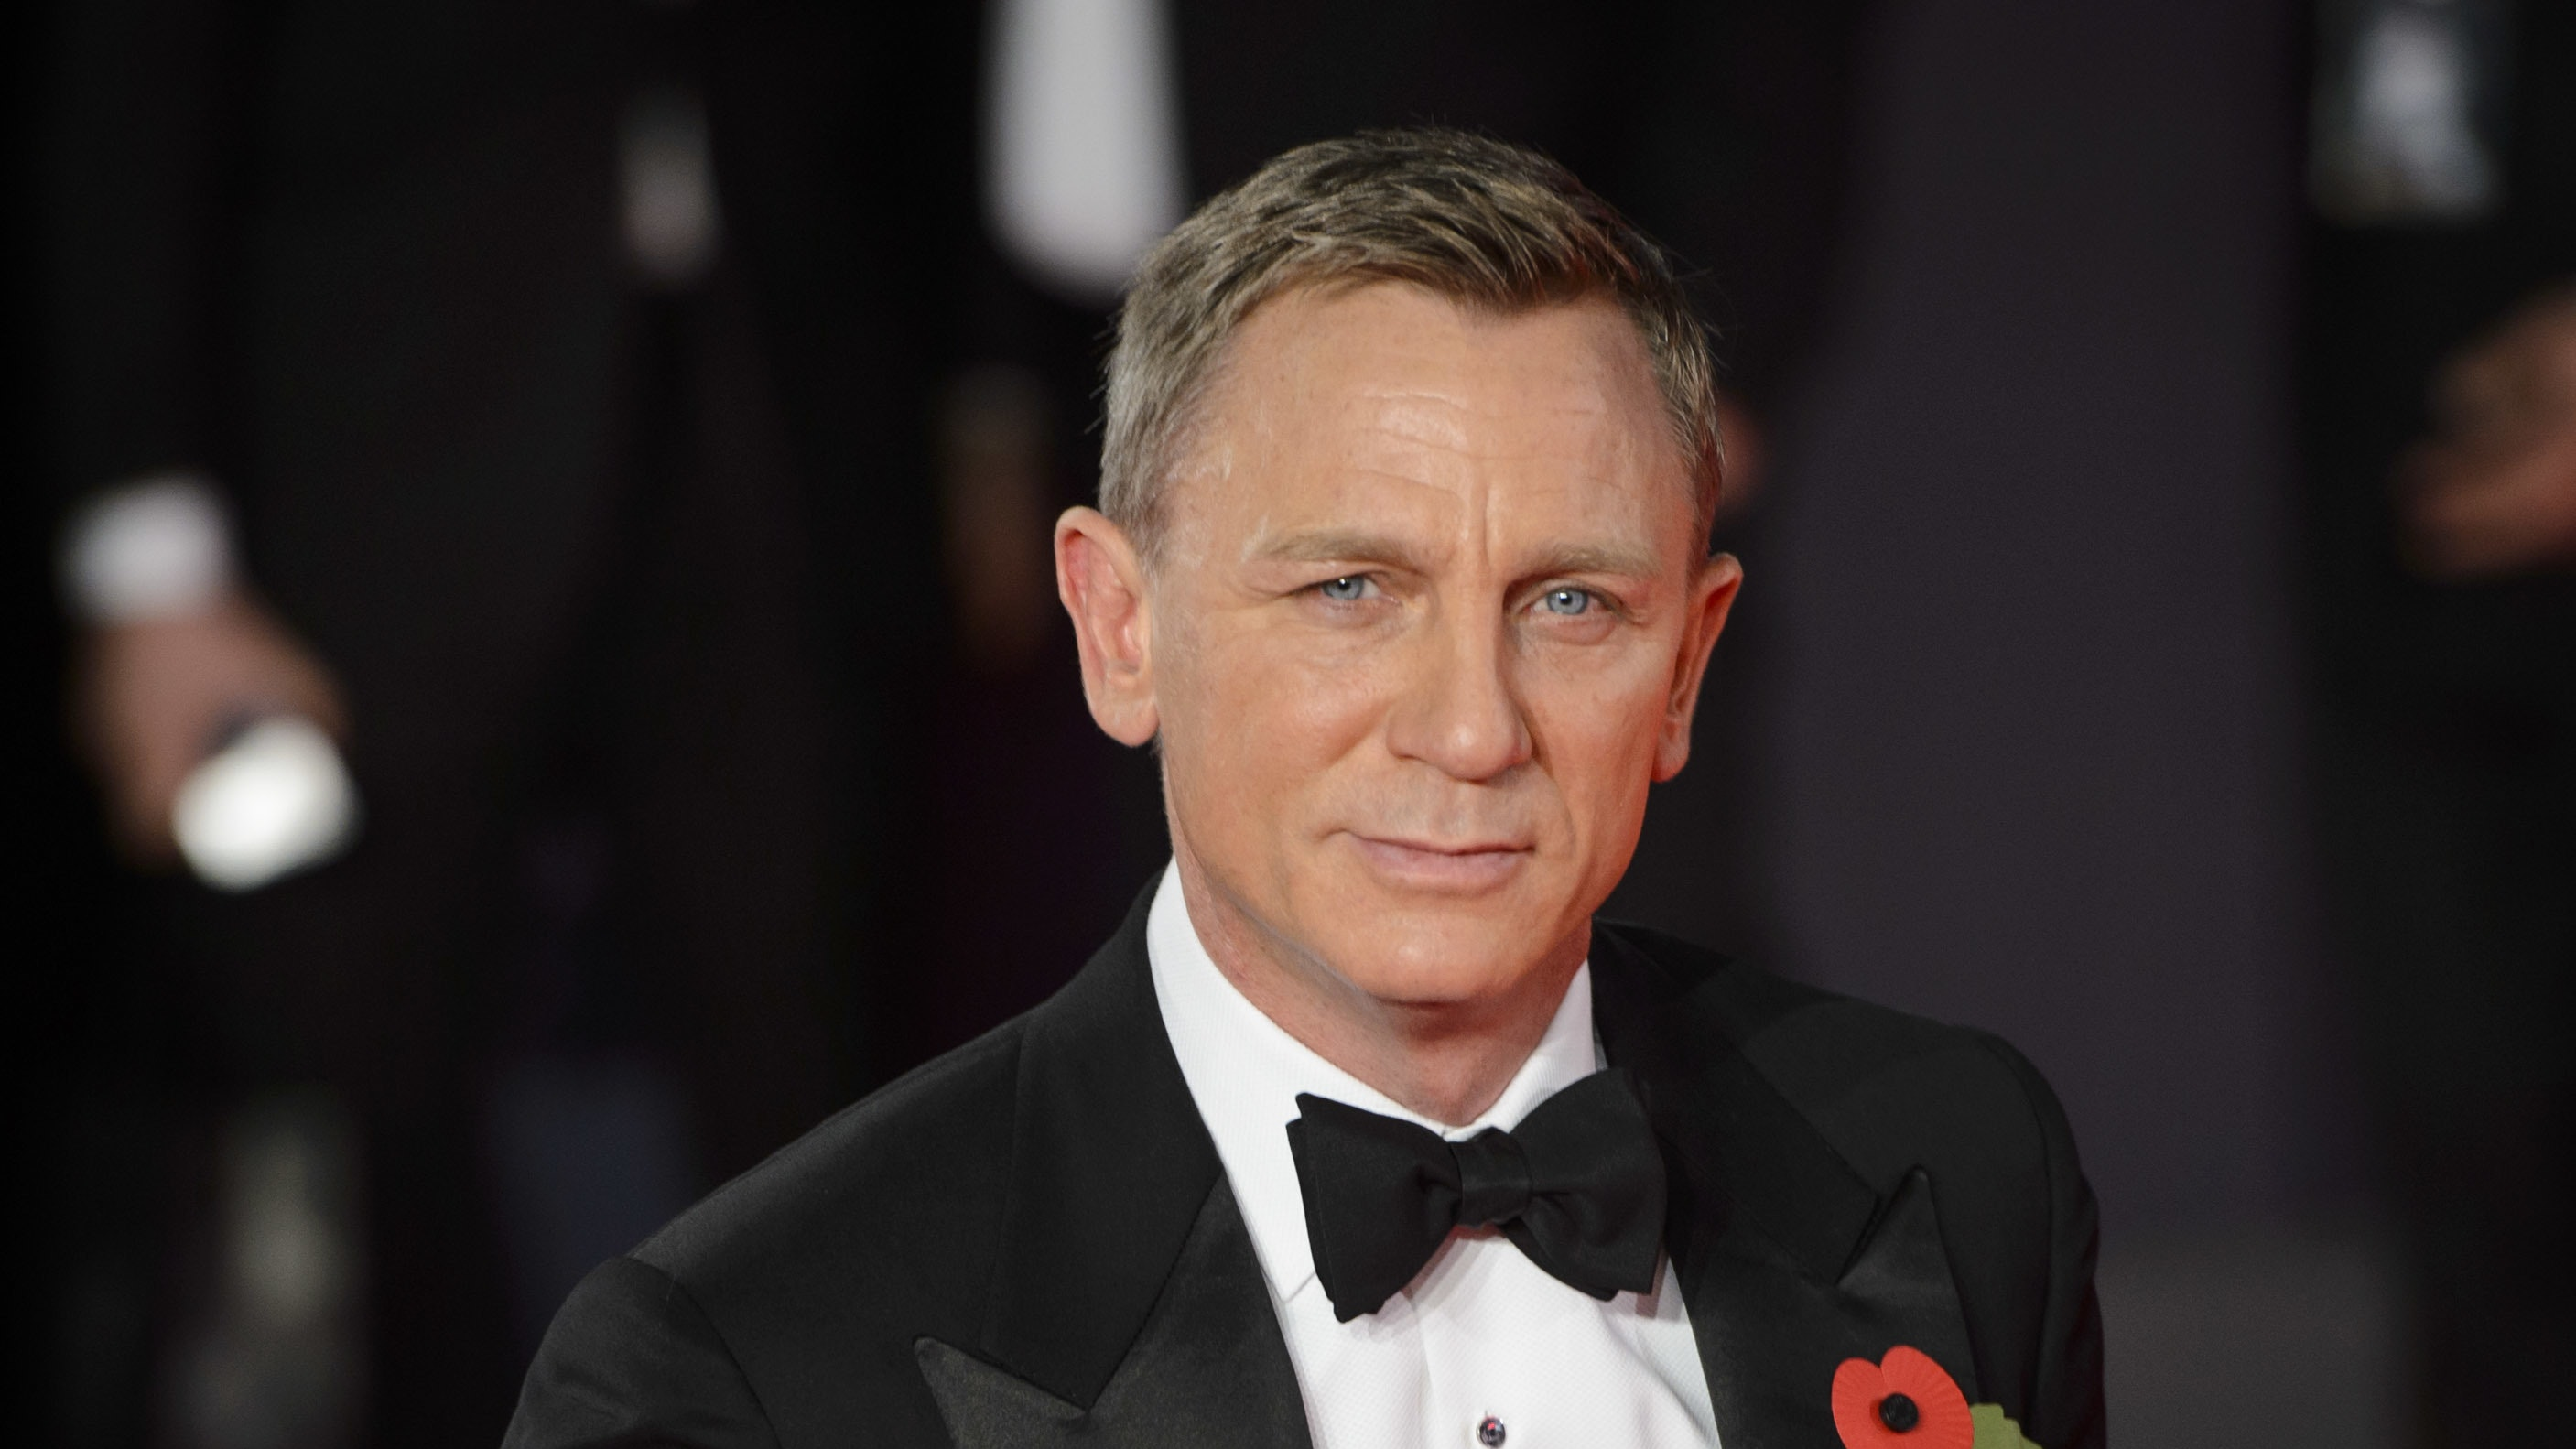 Shatterhand is working title for Bond 25, Daniel Craig's last 007 film